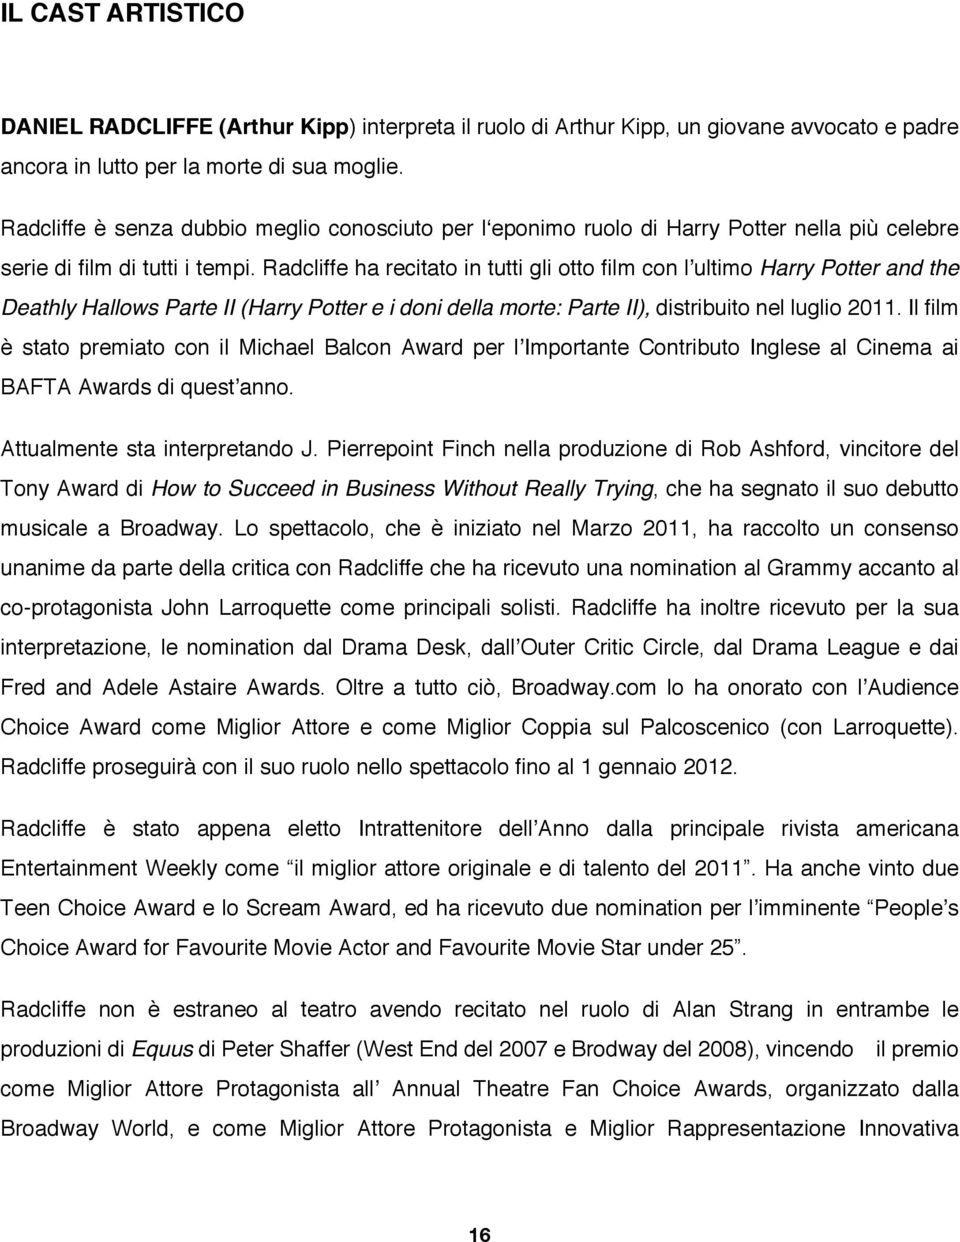 Radcliffe ha recitato in tutti gli otto film con l'ultimo Harry Potter and the Deathly Hallows Parte II (Harry Potter e i doni della morte: Parte II), distribuito nel luglio 2011.